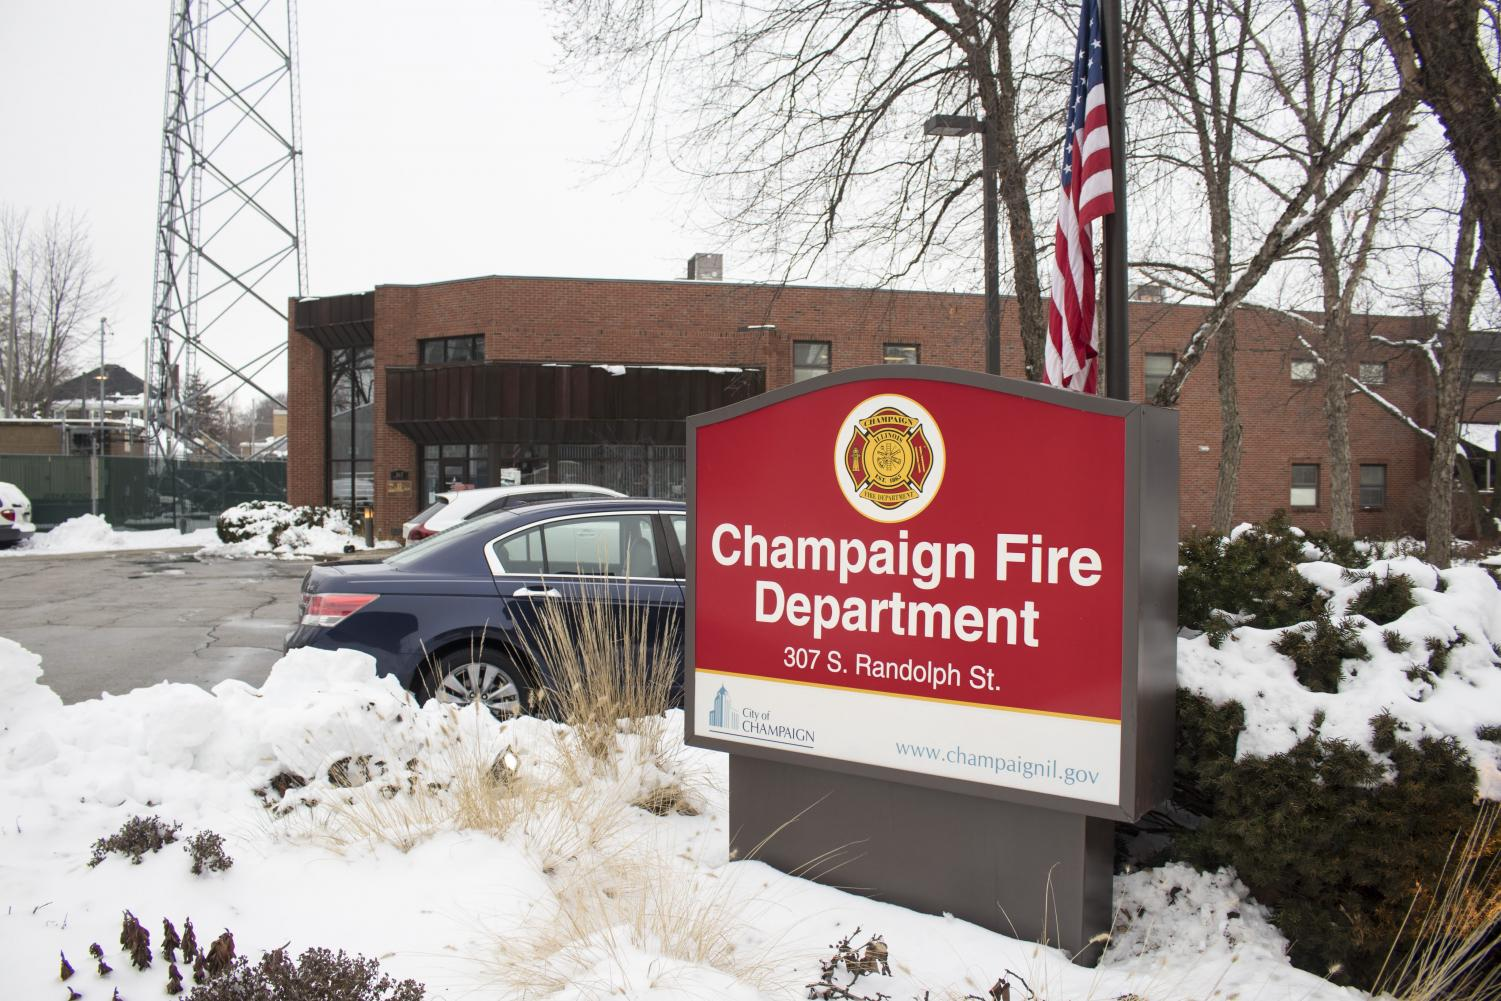 The Champaign Fire Department, located at 307 S. Randolph St. The Illinois Public Pension Fund Association and Northern Illinois University will be holding several sessions across the state to aid police officers and firefighters who may be dealing with PTSD.